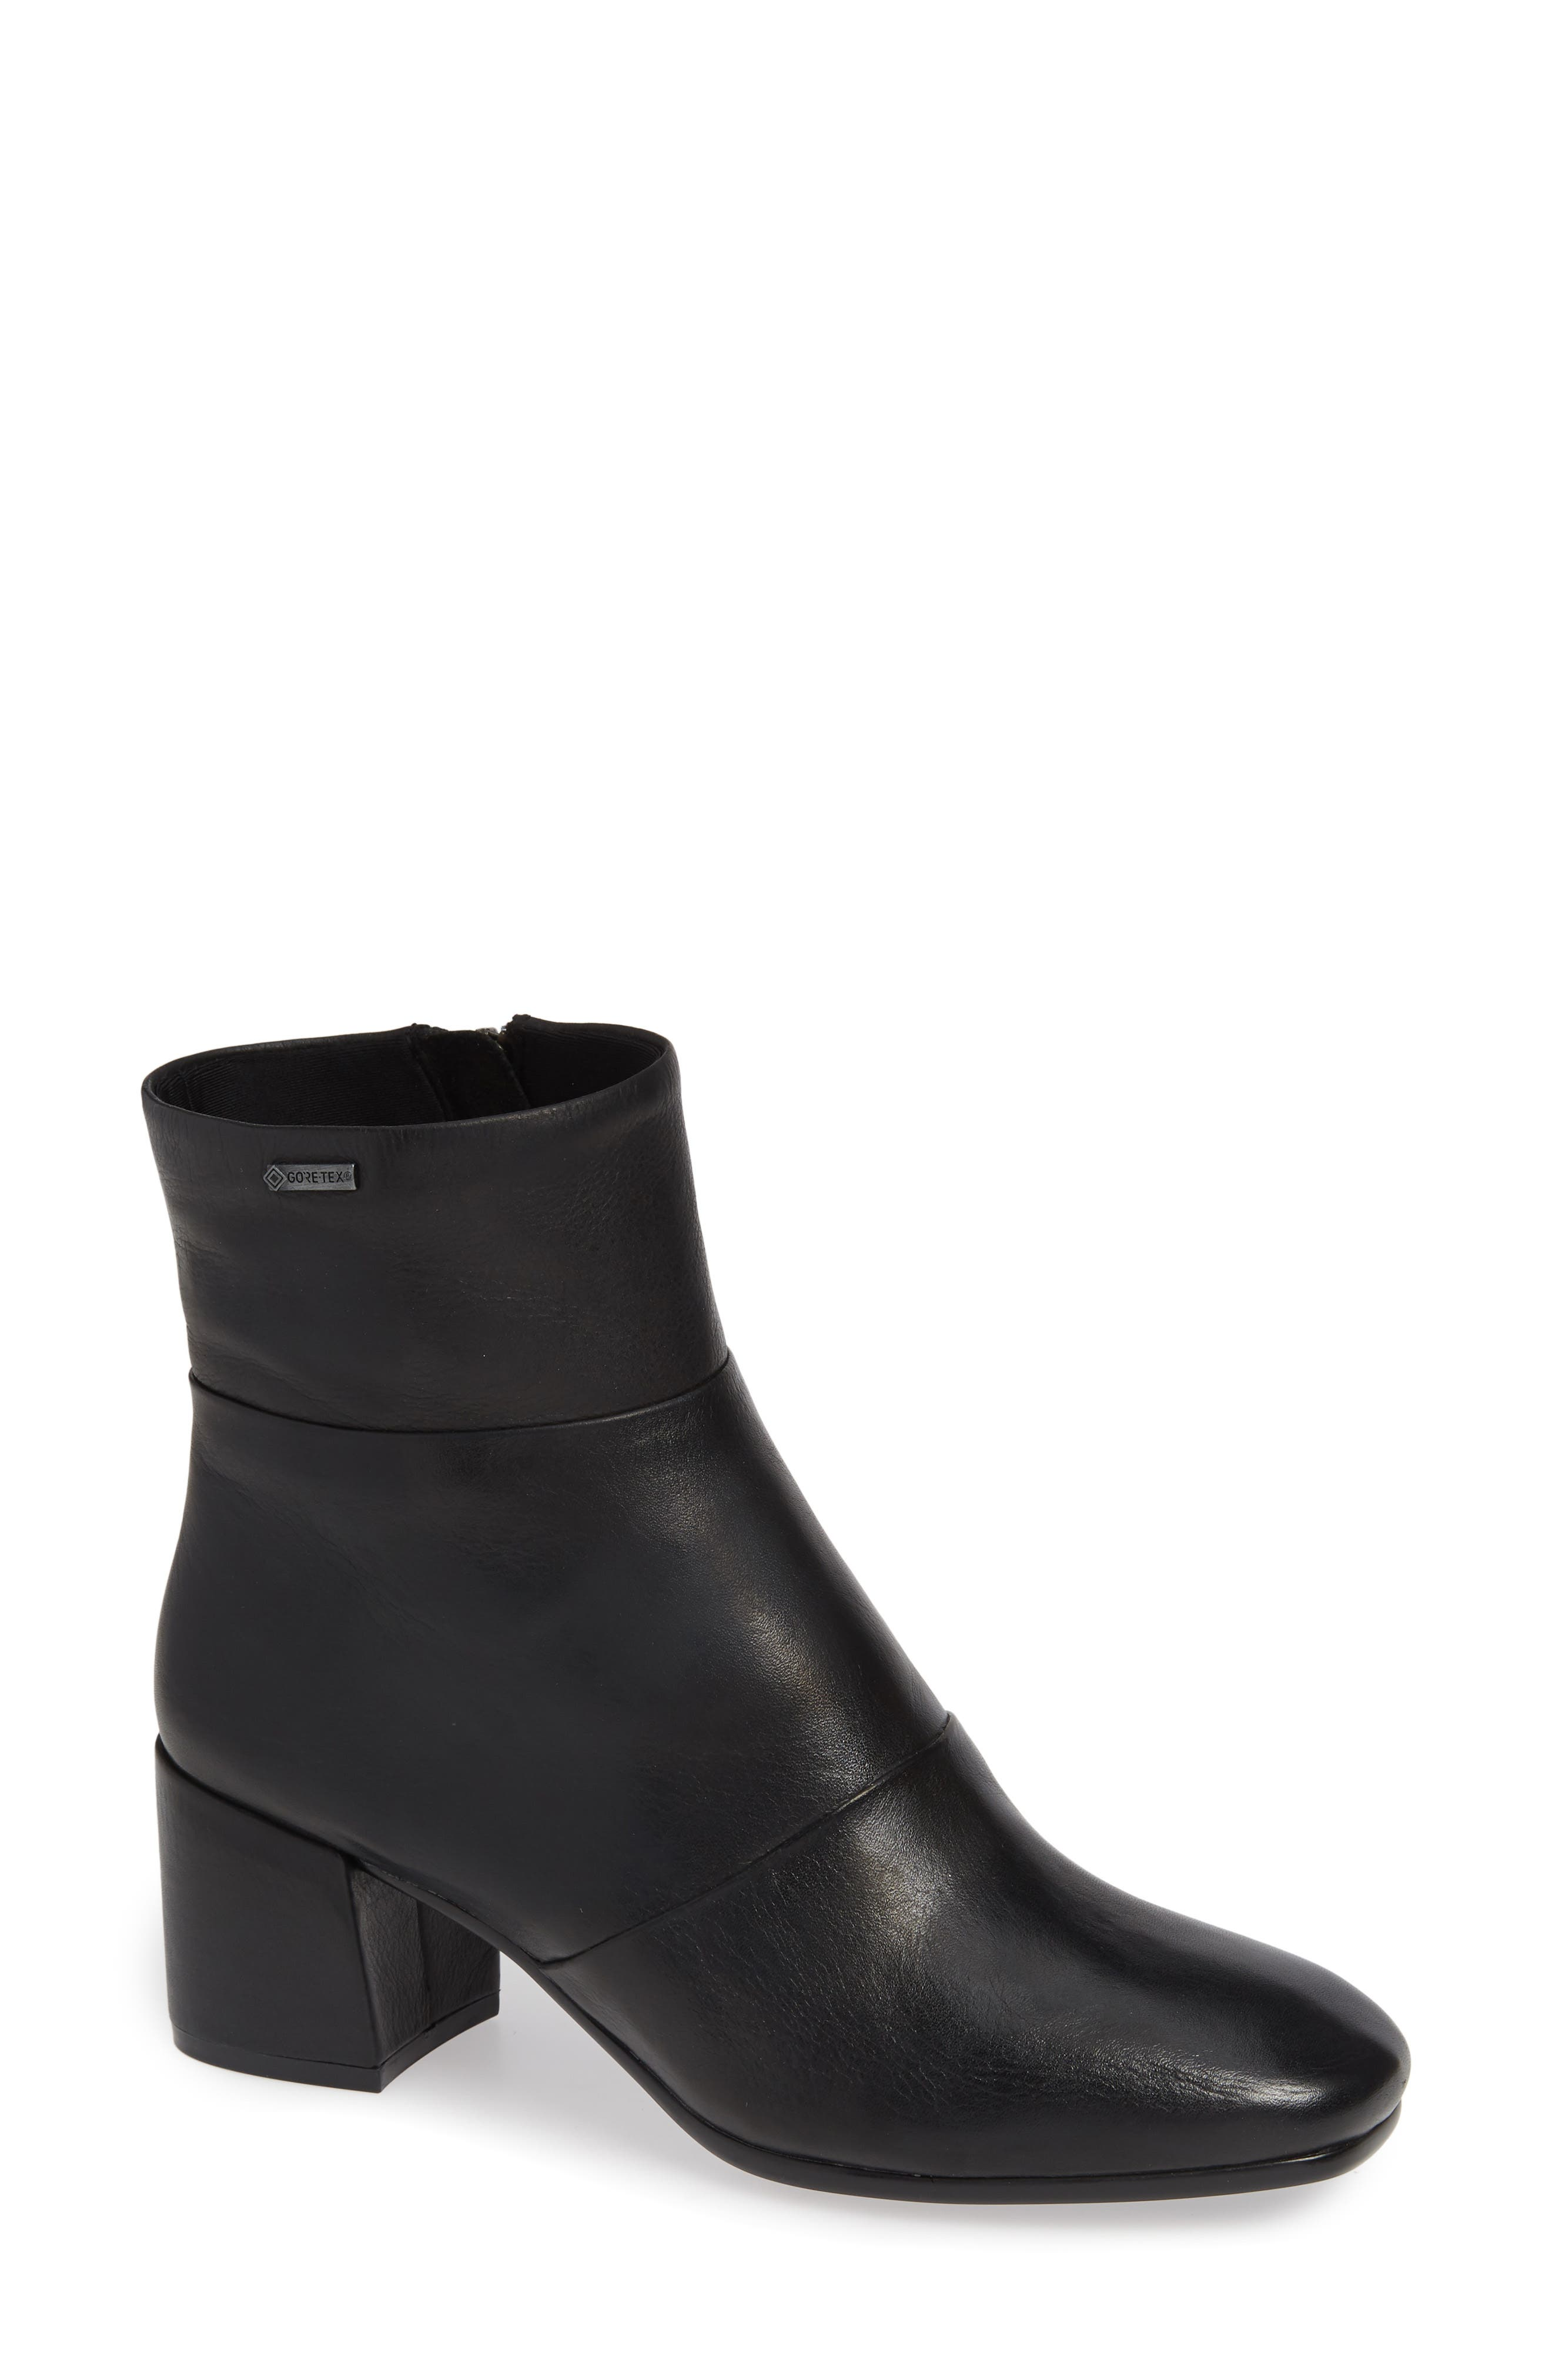 Eryc Bootie,                             Main thumbnail 1, color,                             BLACK LEATHER